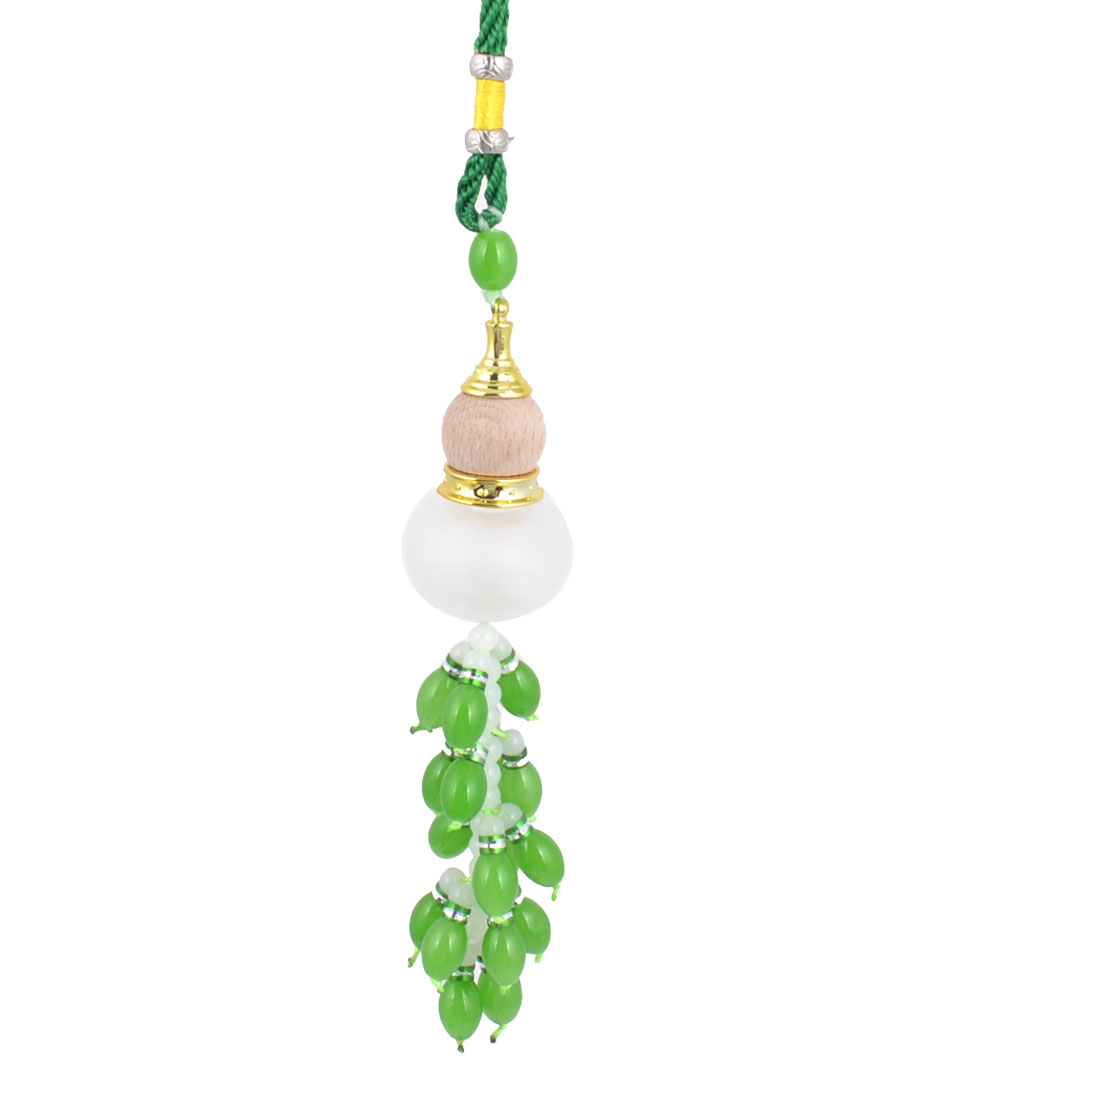 Multi Beads Linked Tassel Hanging Calabash Perfume Bottle Pendant Ornament Green for Auto Car